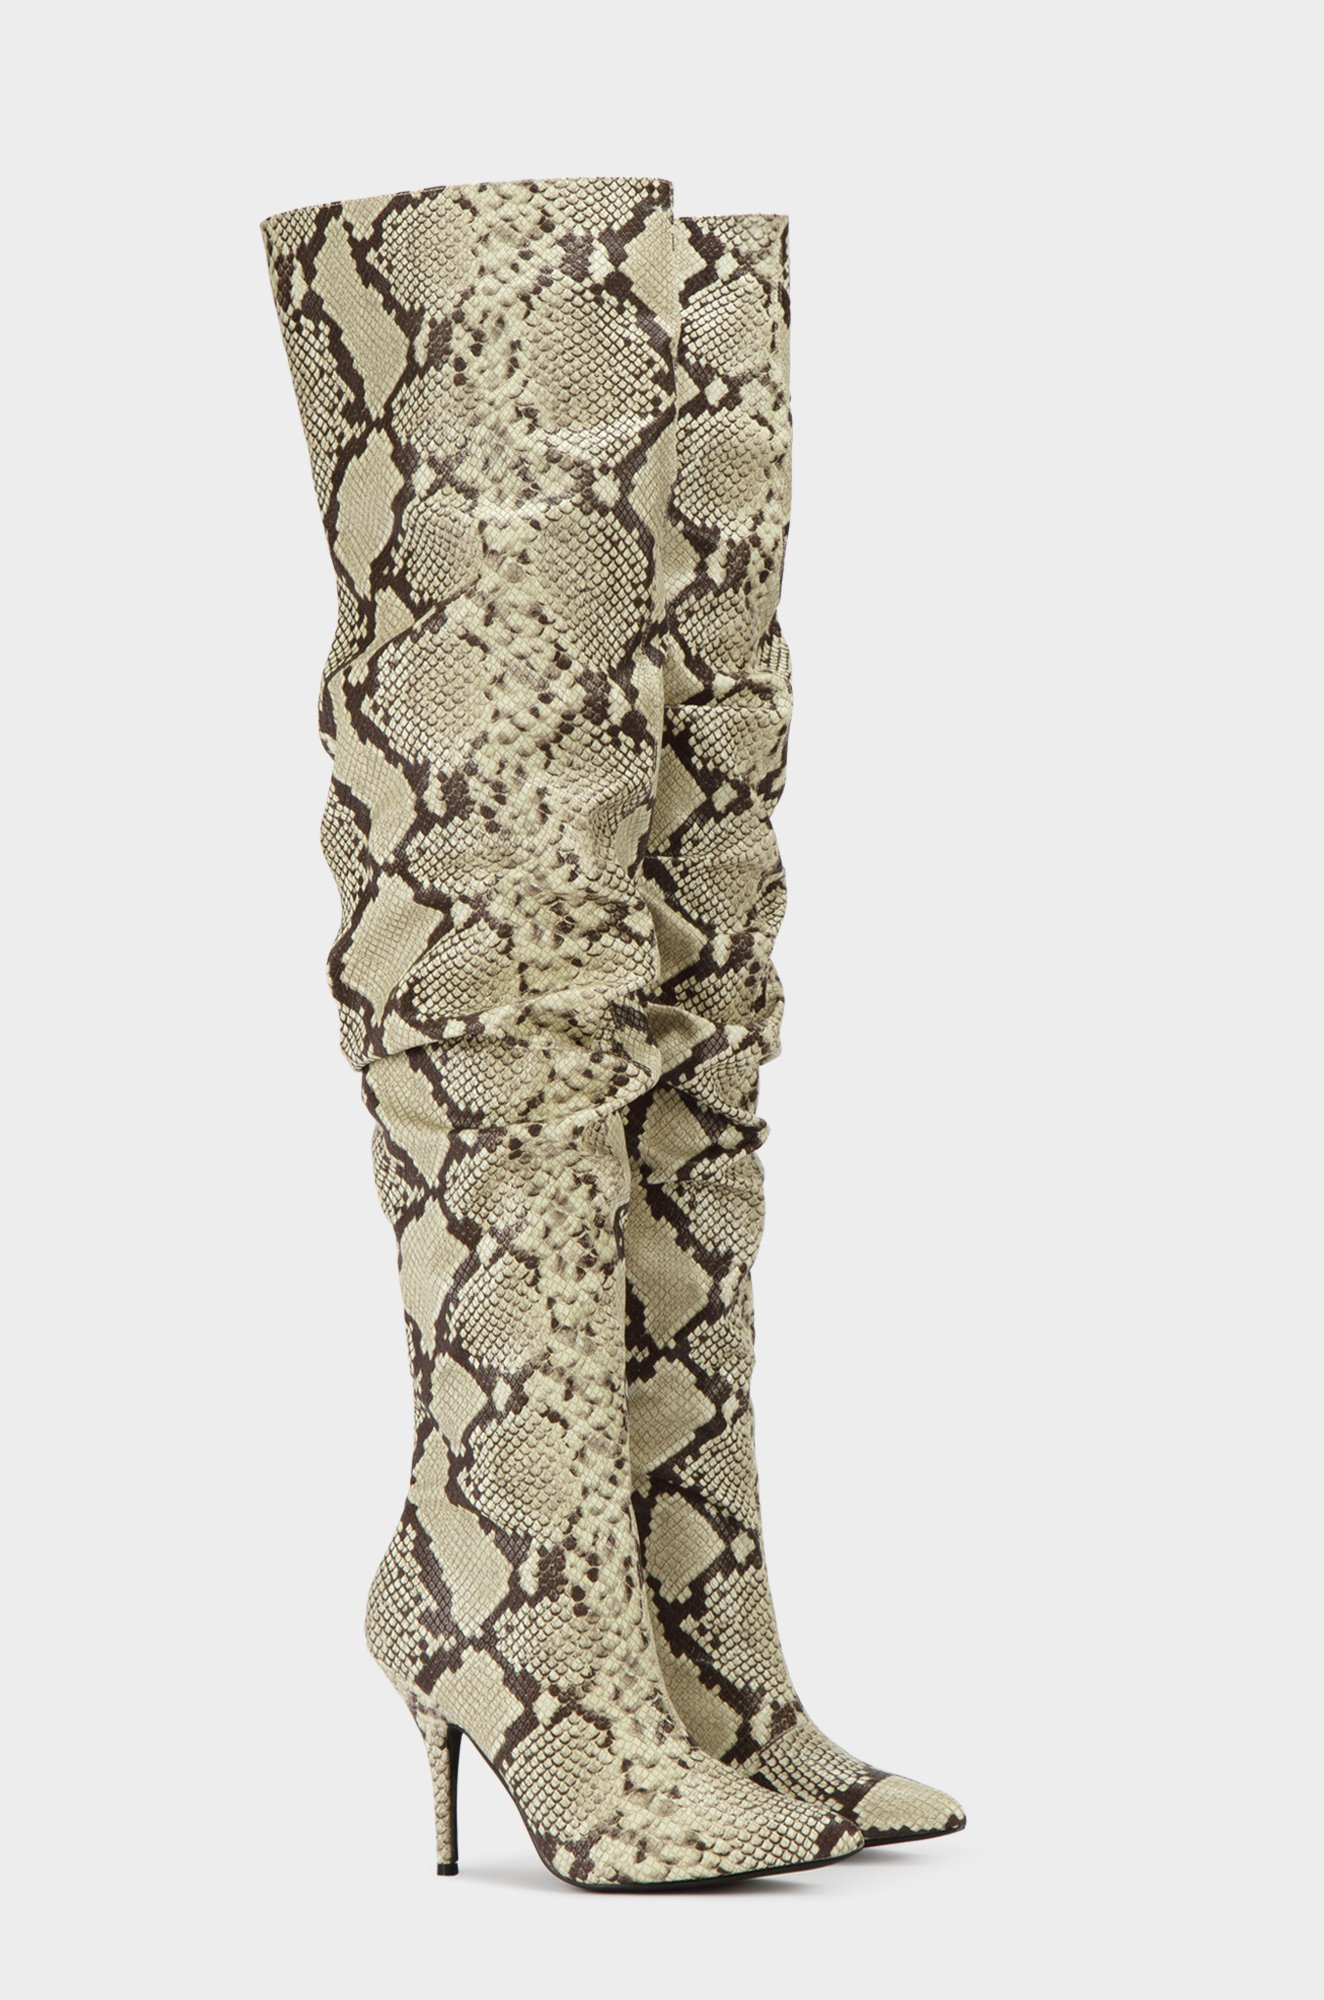 Cape-Robbin-Bown-Snake-Thigh-High-Slouch-Pointed-Toe-Over-The-Knee-Stiletto-Boot thumbnail 33